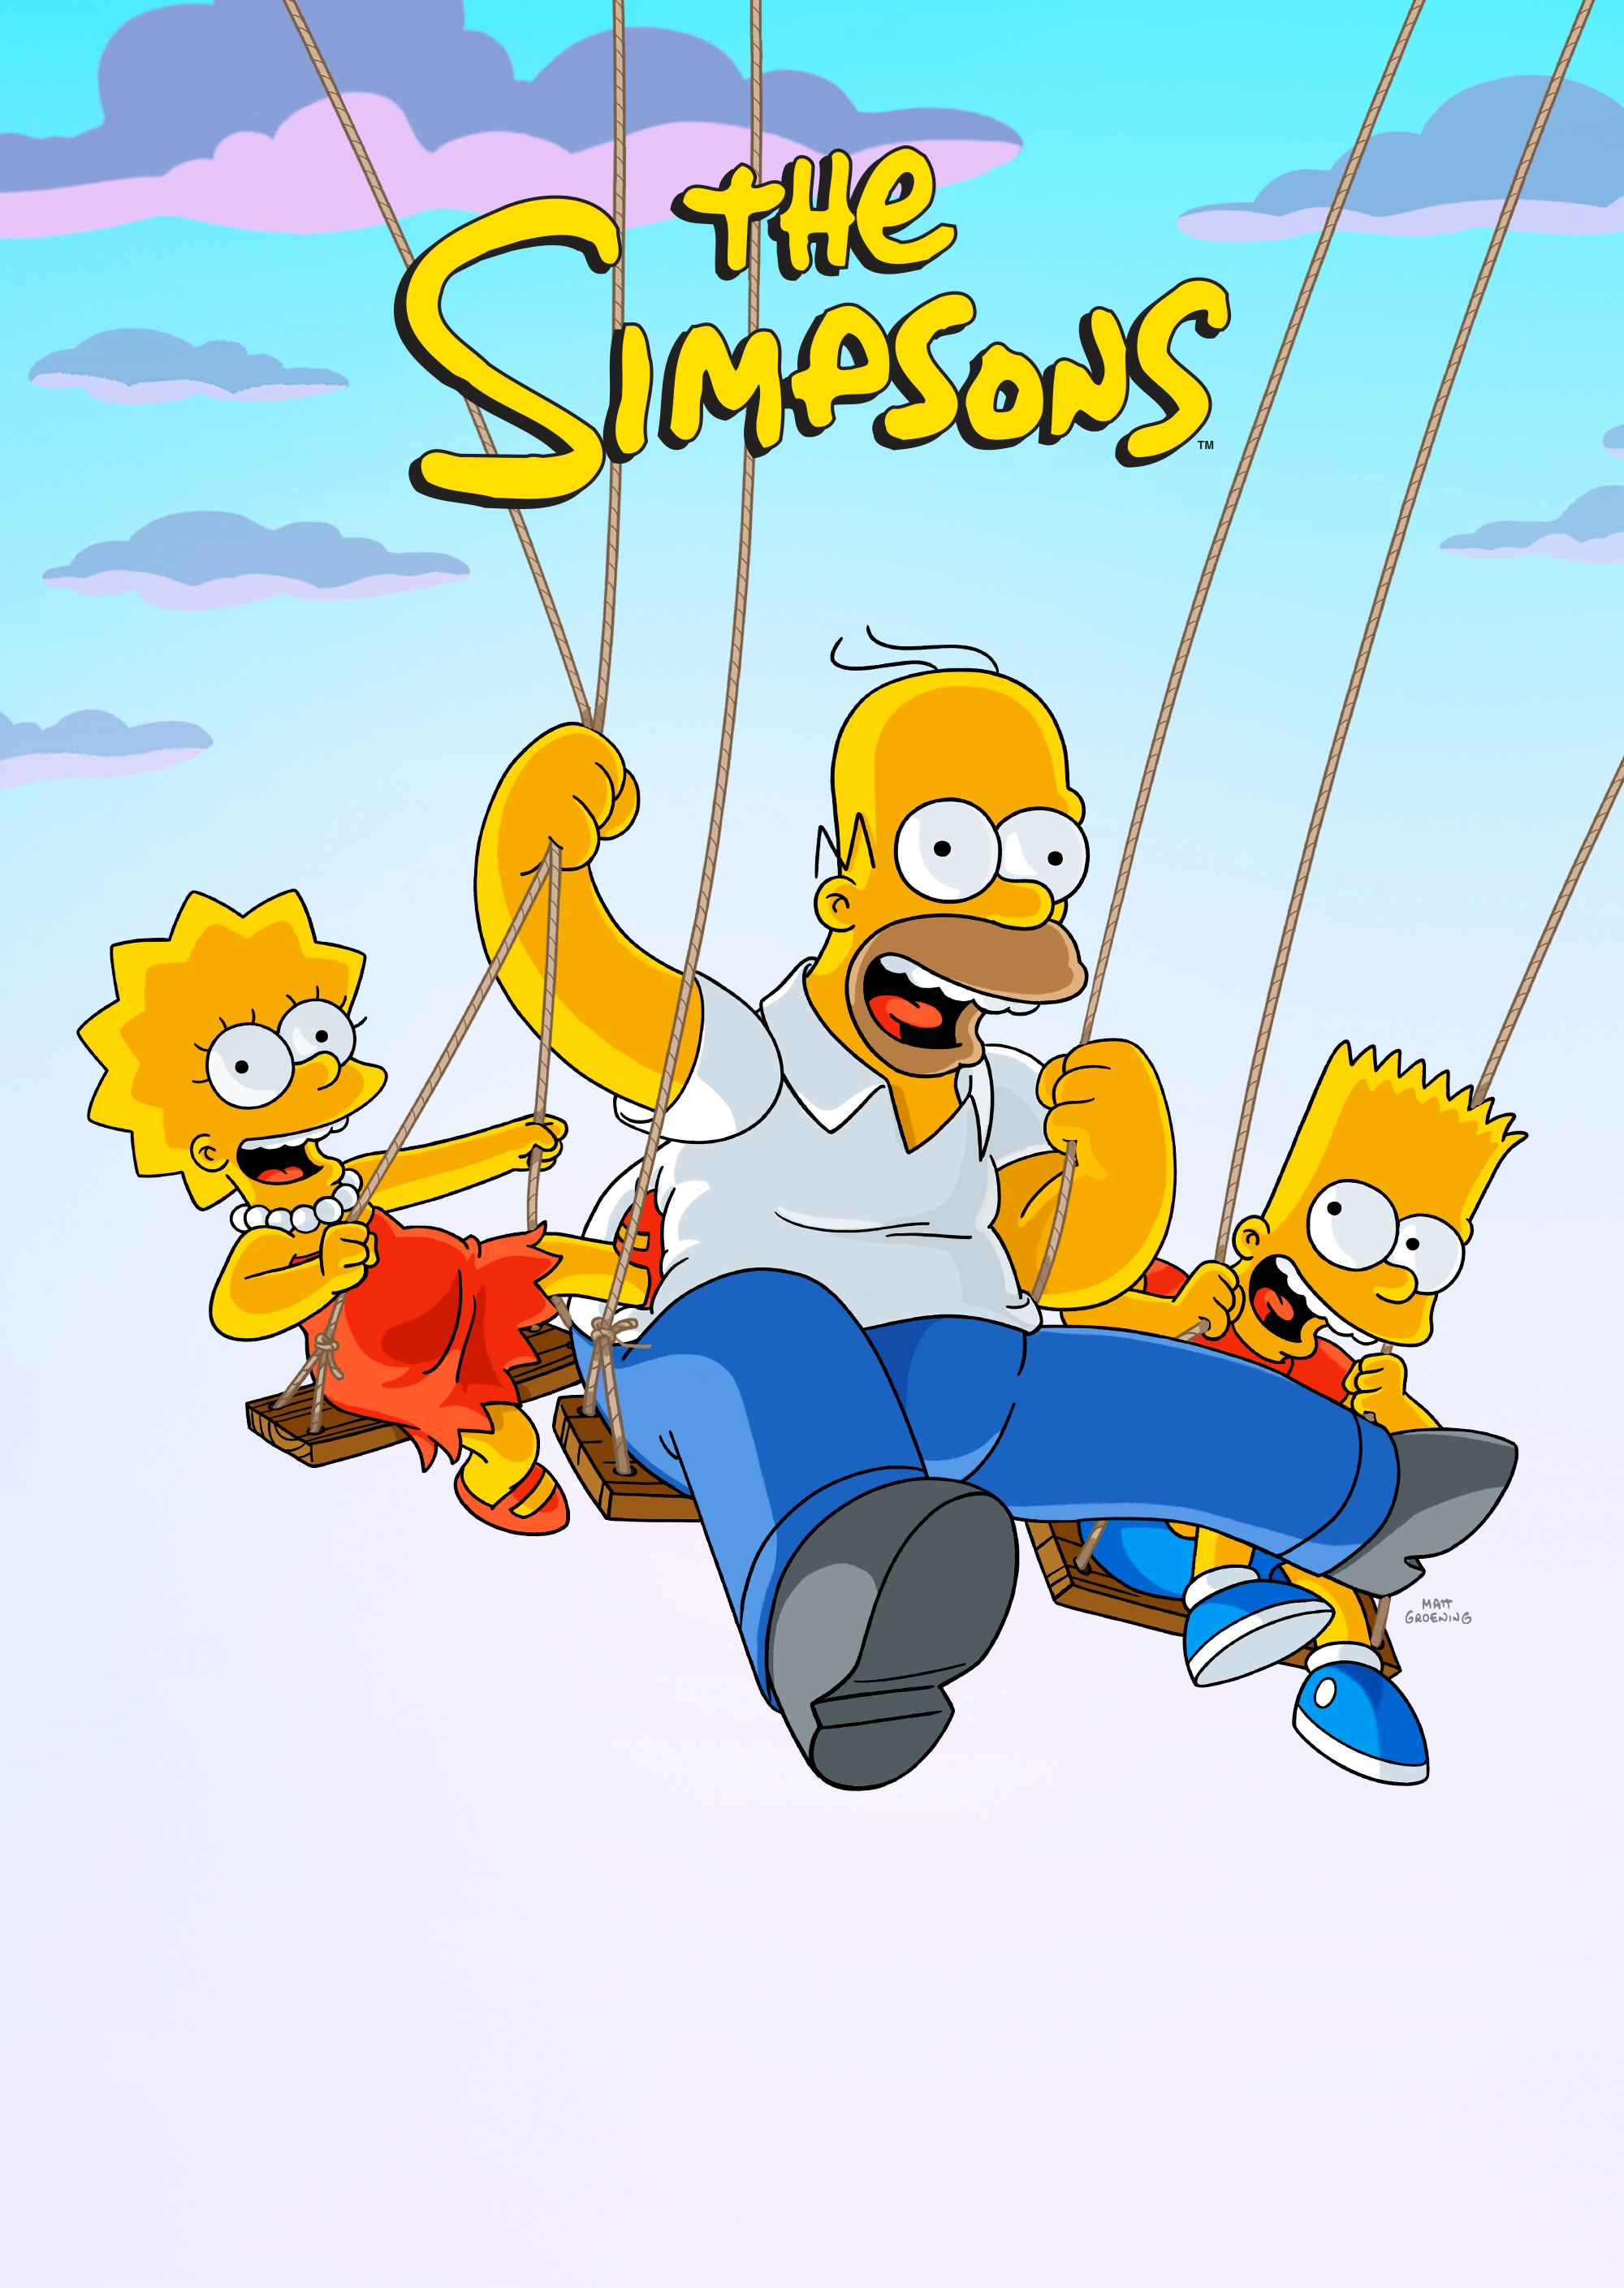 The Simpsons on Disney+